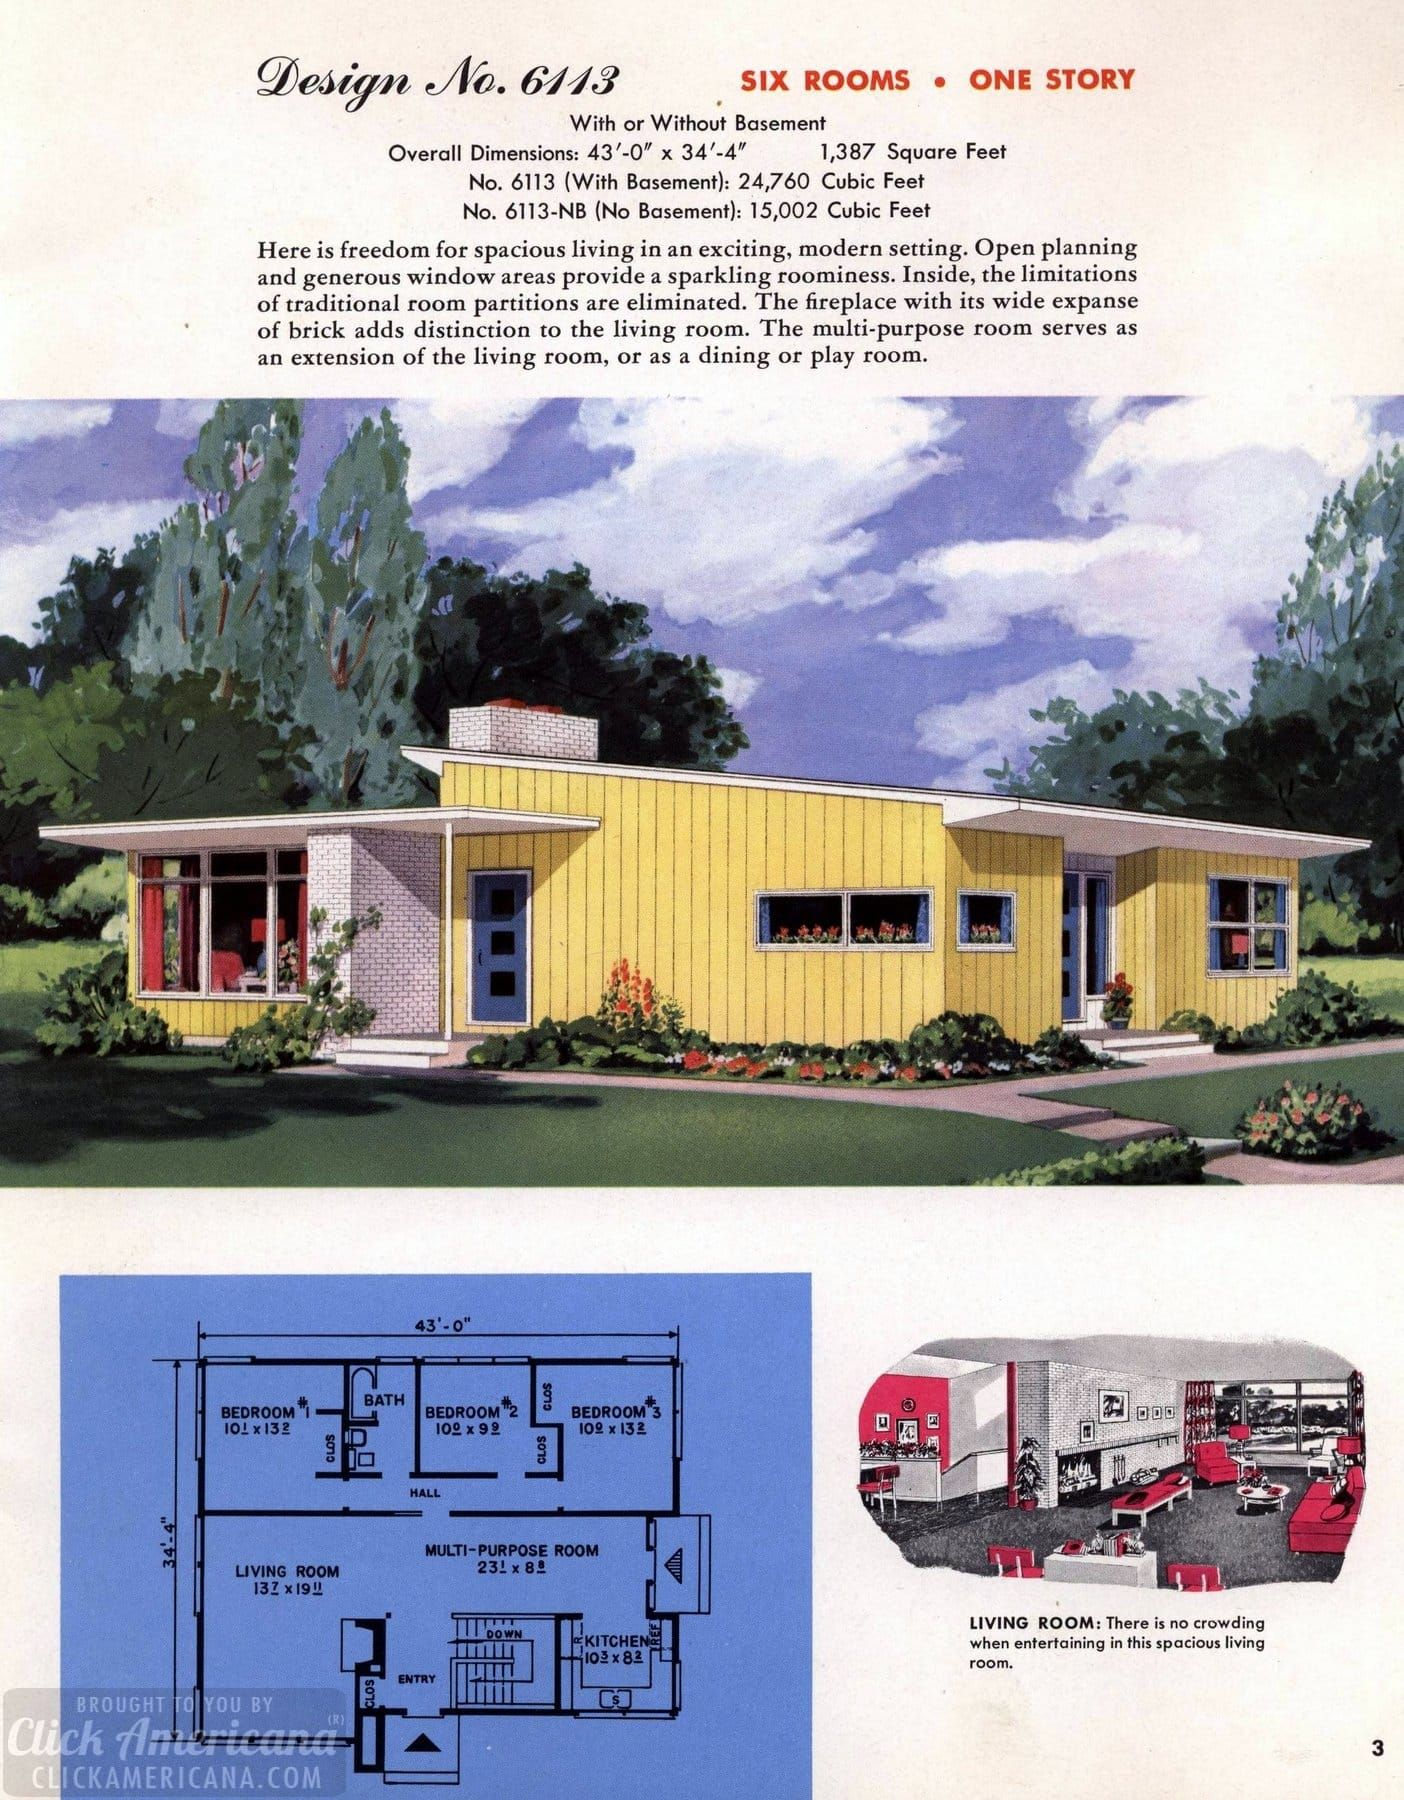 130 Vintage 50s House Plans Used To Build Millions Of Mid Century Homes We Still Live In Today Mid Century Modern House Plans Mid Century House Vintage House Plans